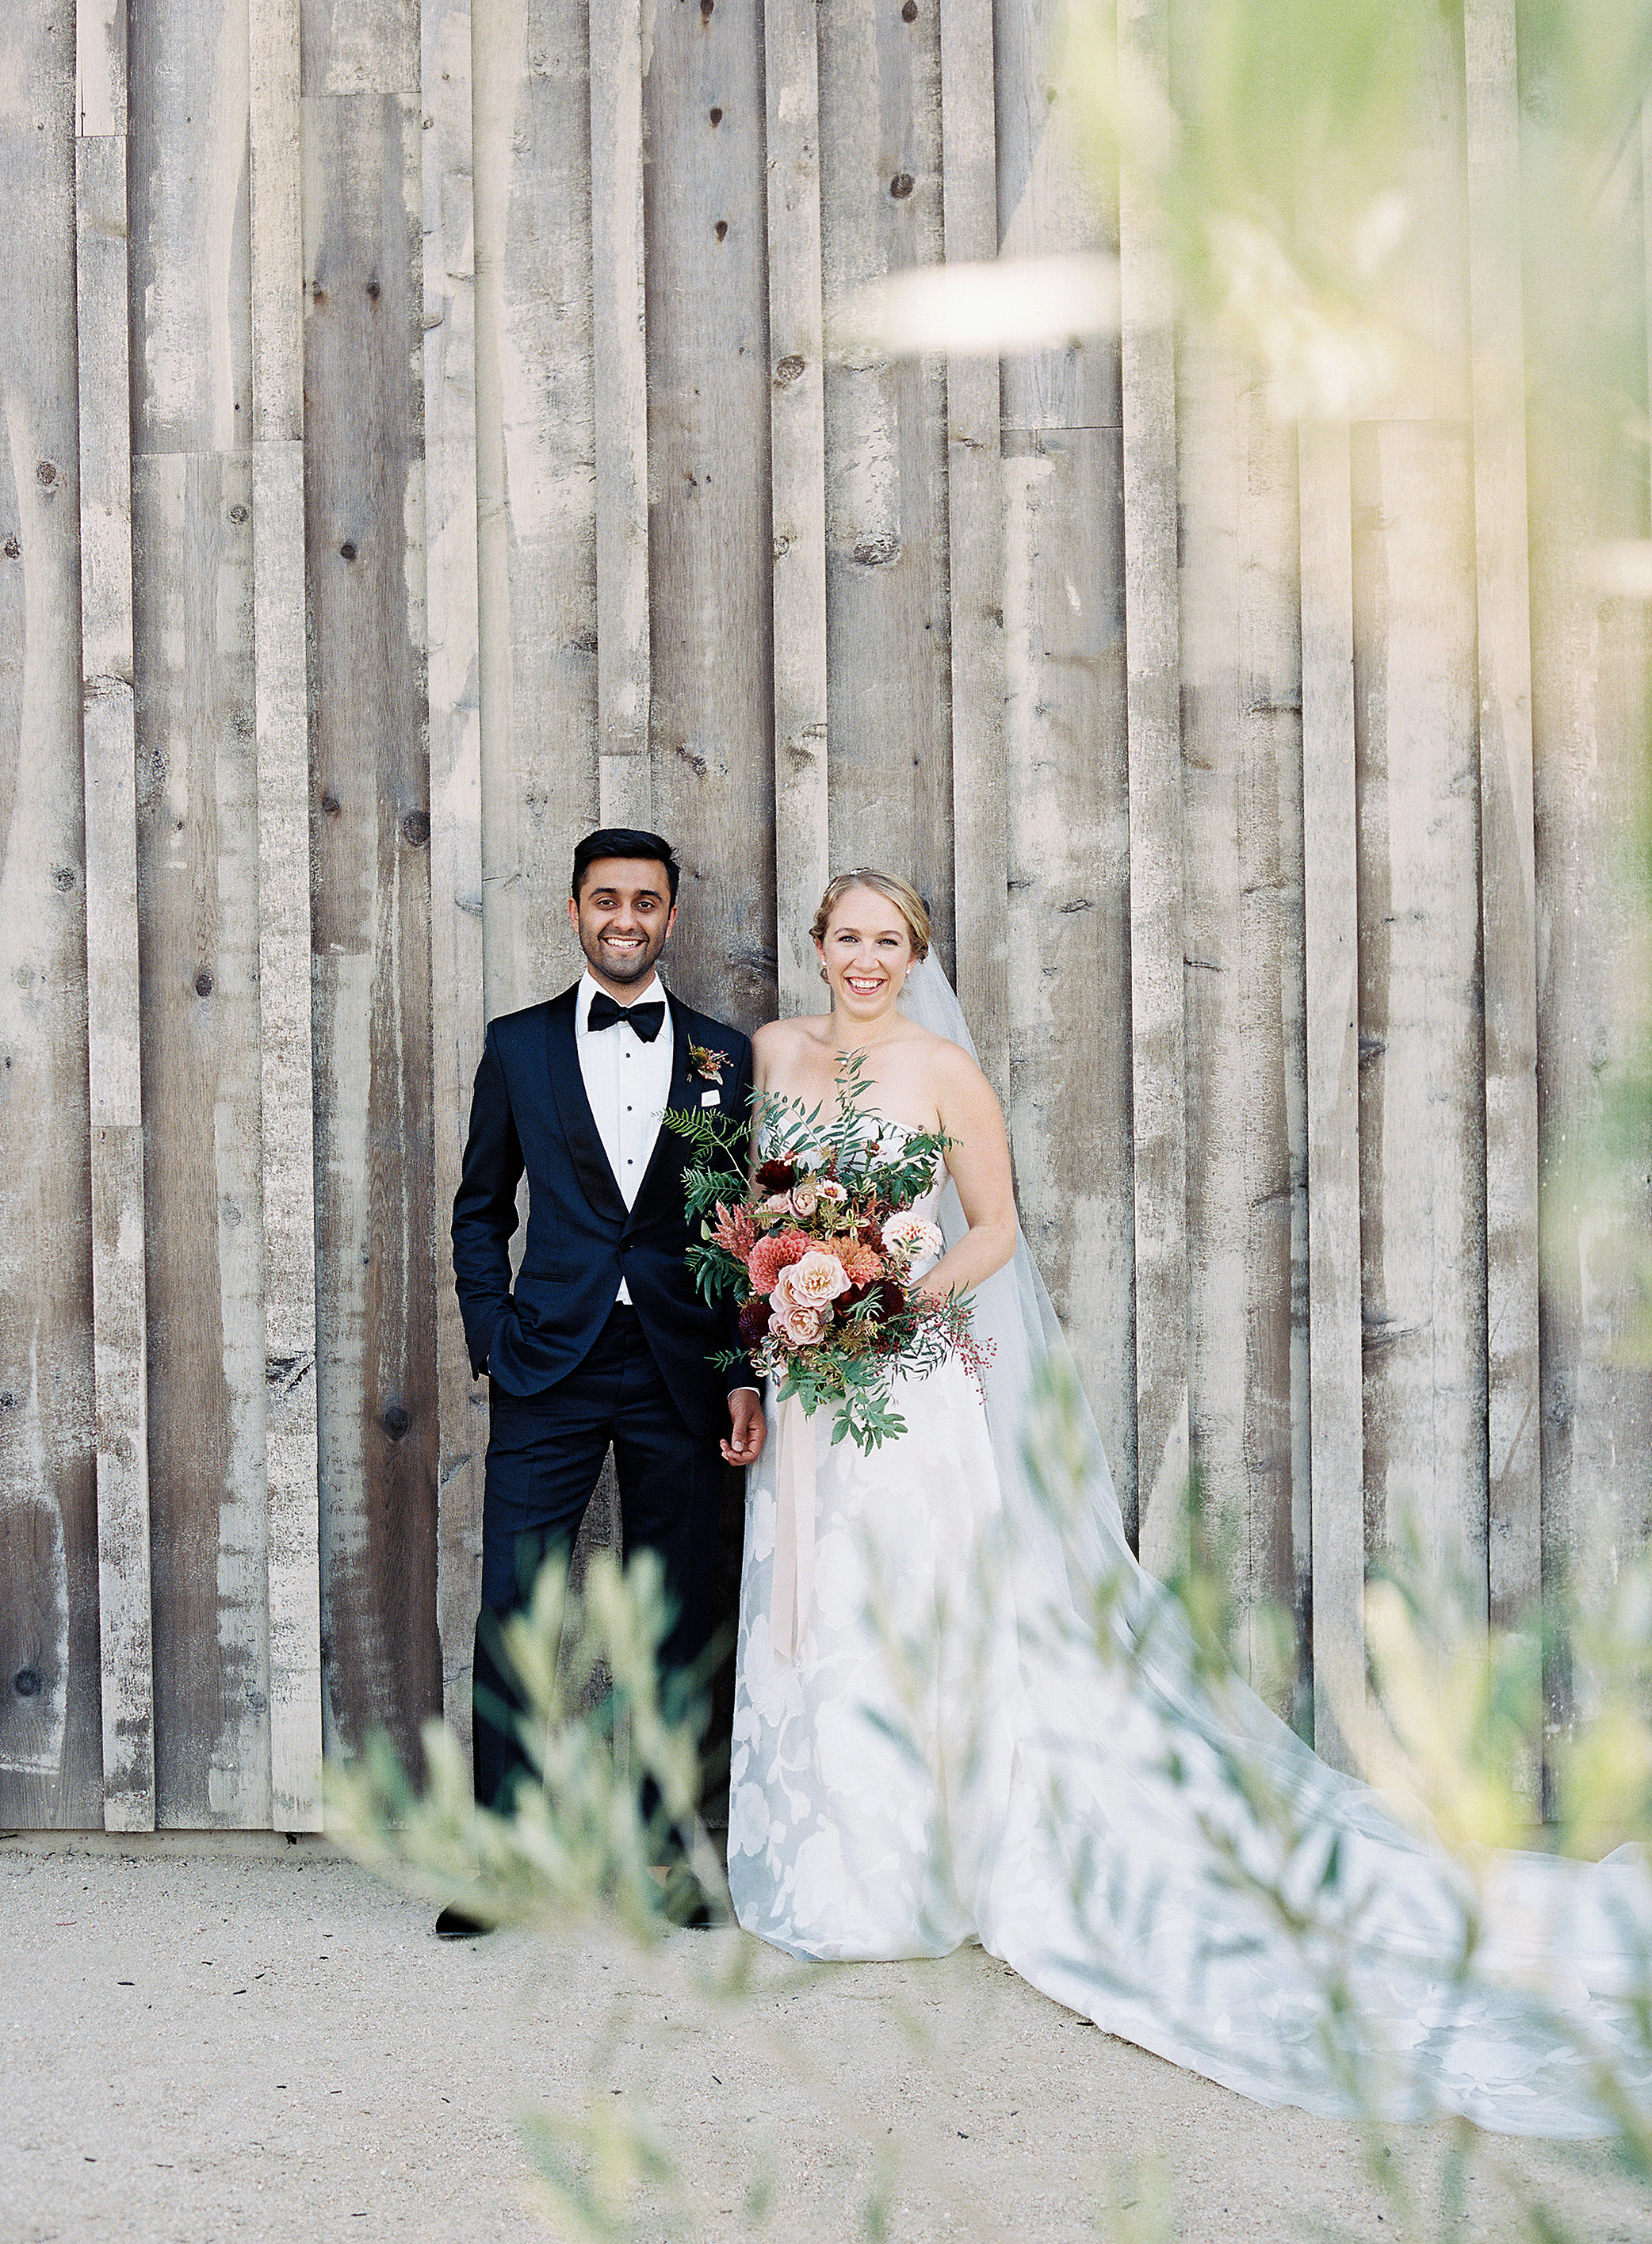 emily siddartha wedding couple bouquet barn